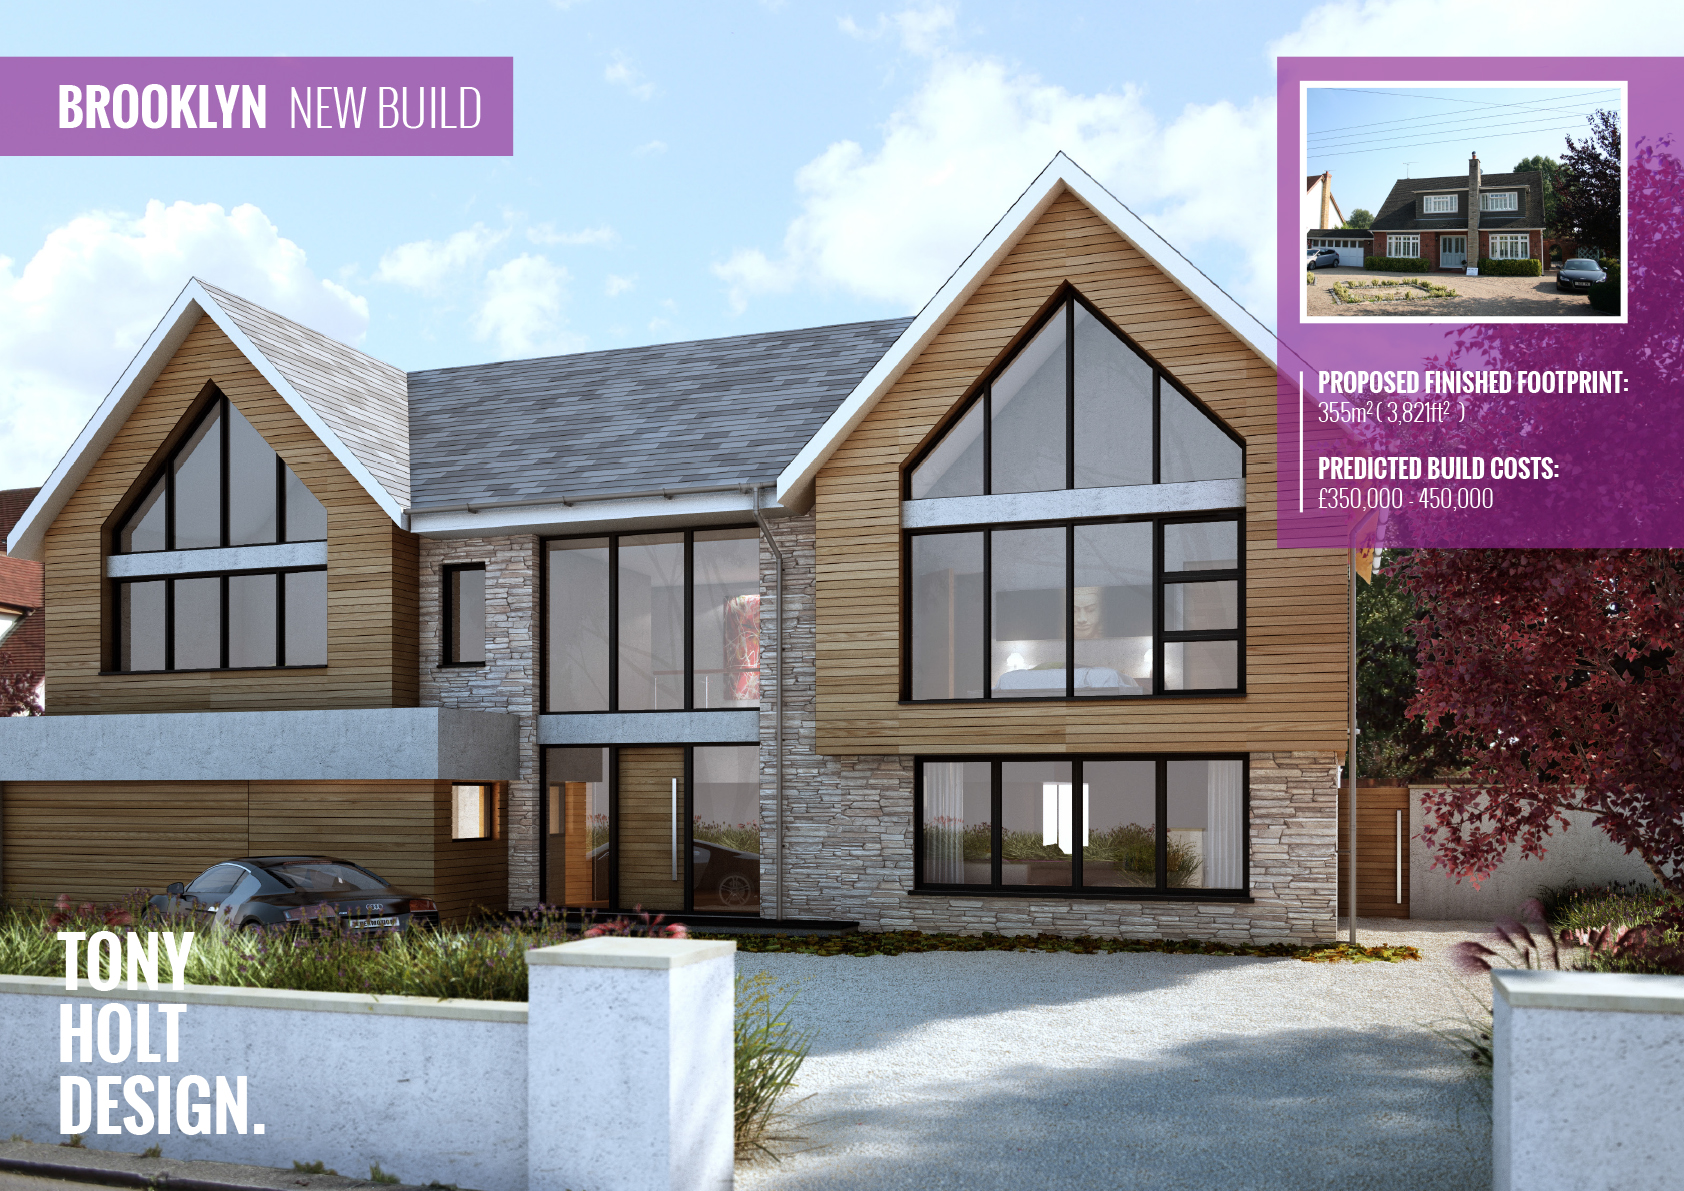 Brooklyn new build tony holt design for New build house plans